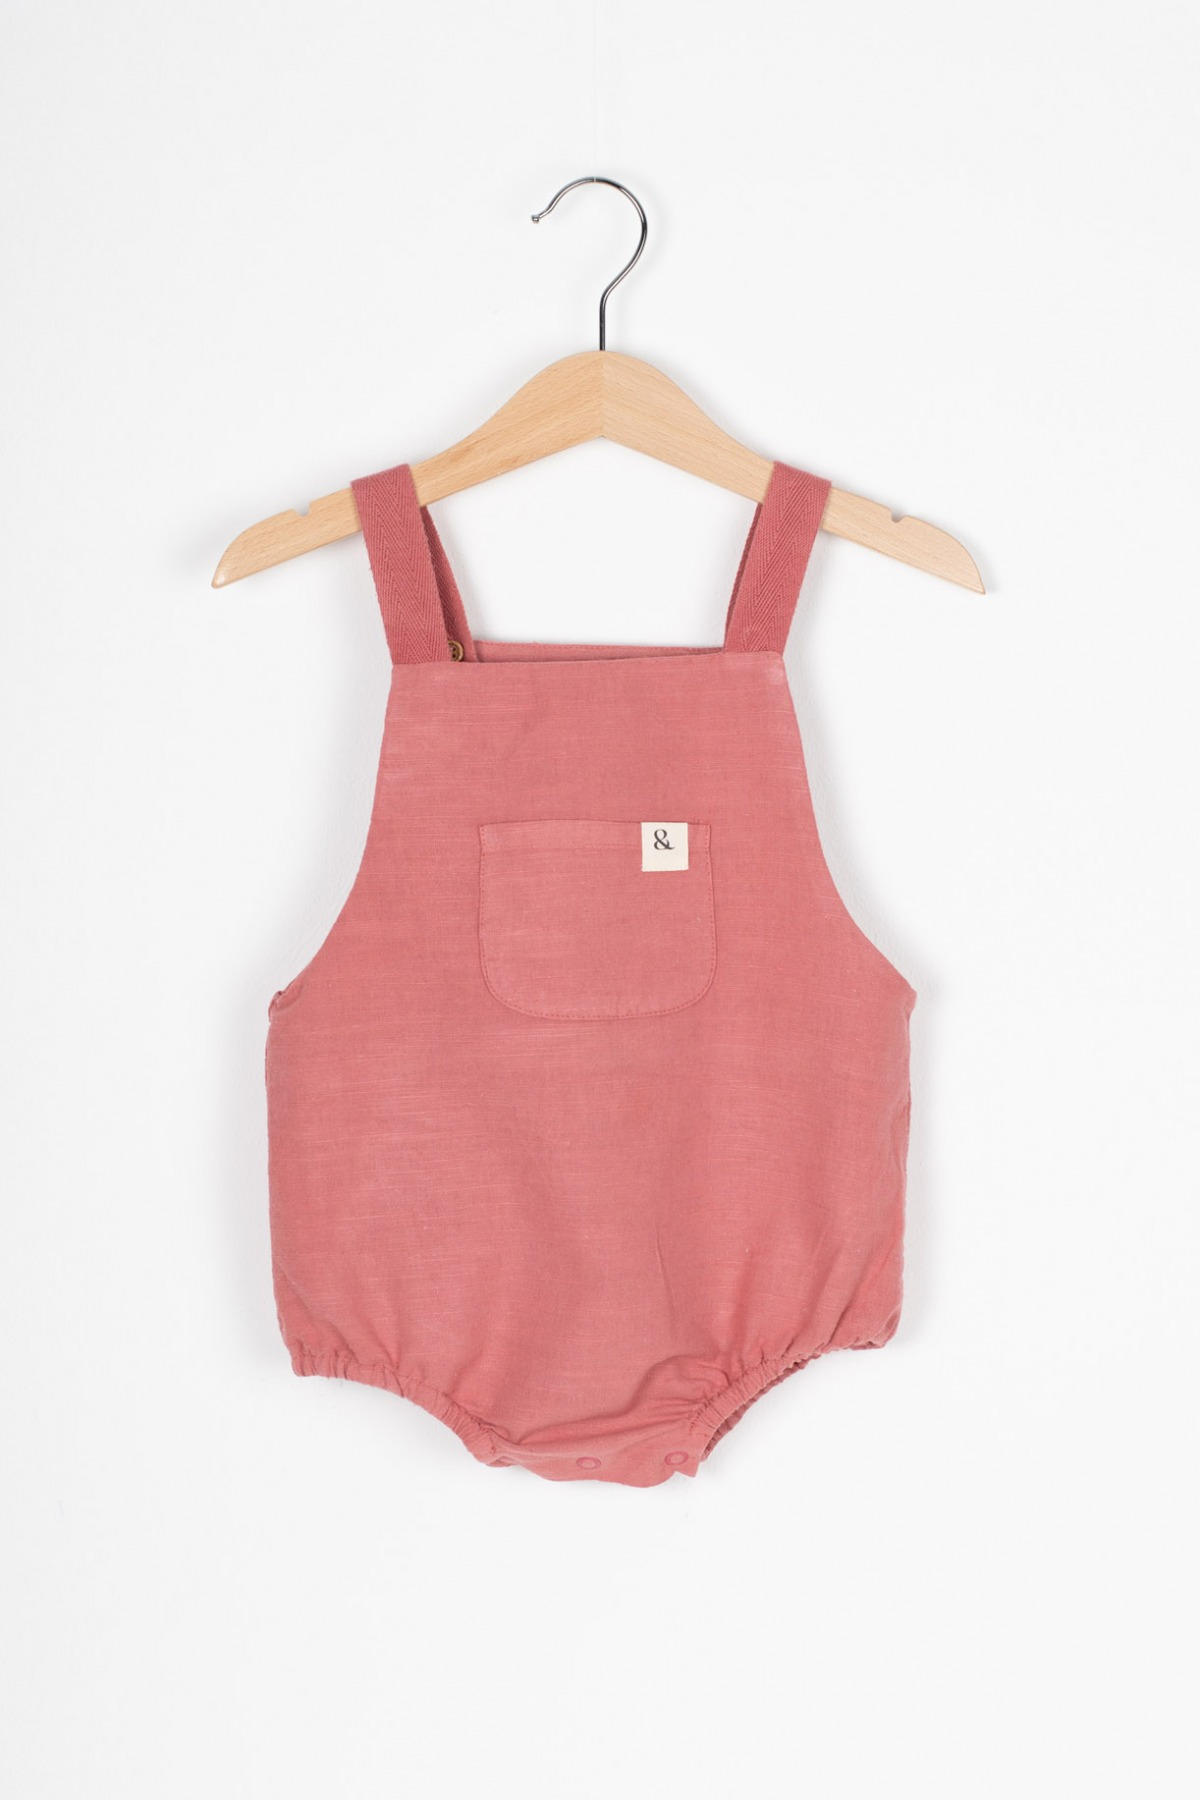 Marbella Romper Baby divider with growing